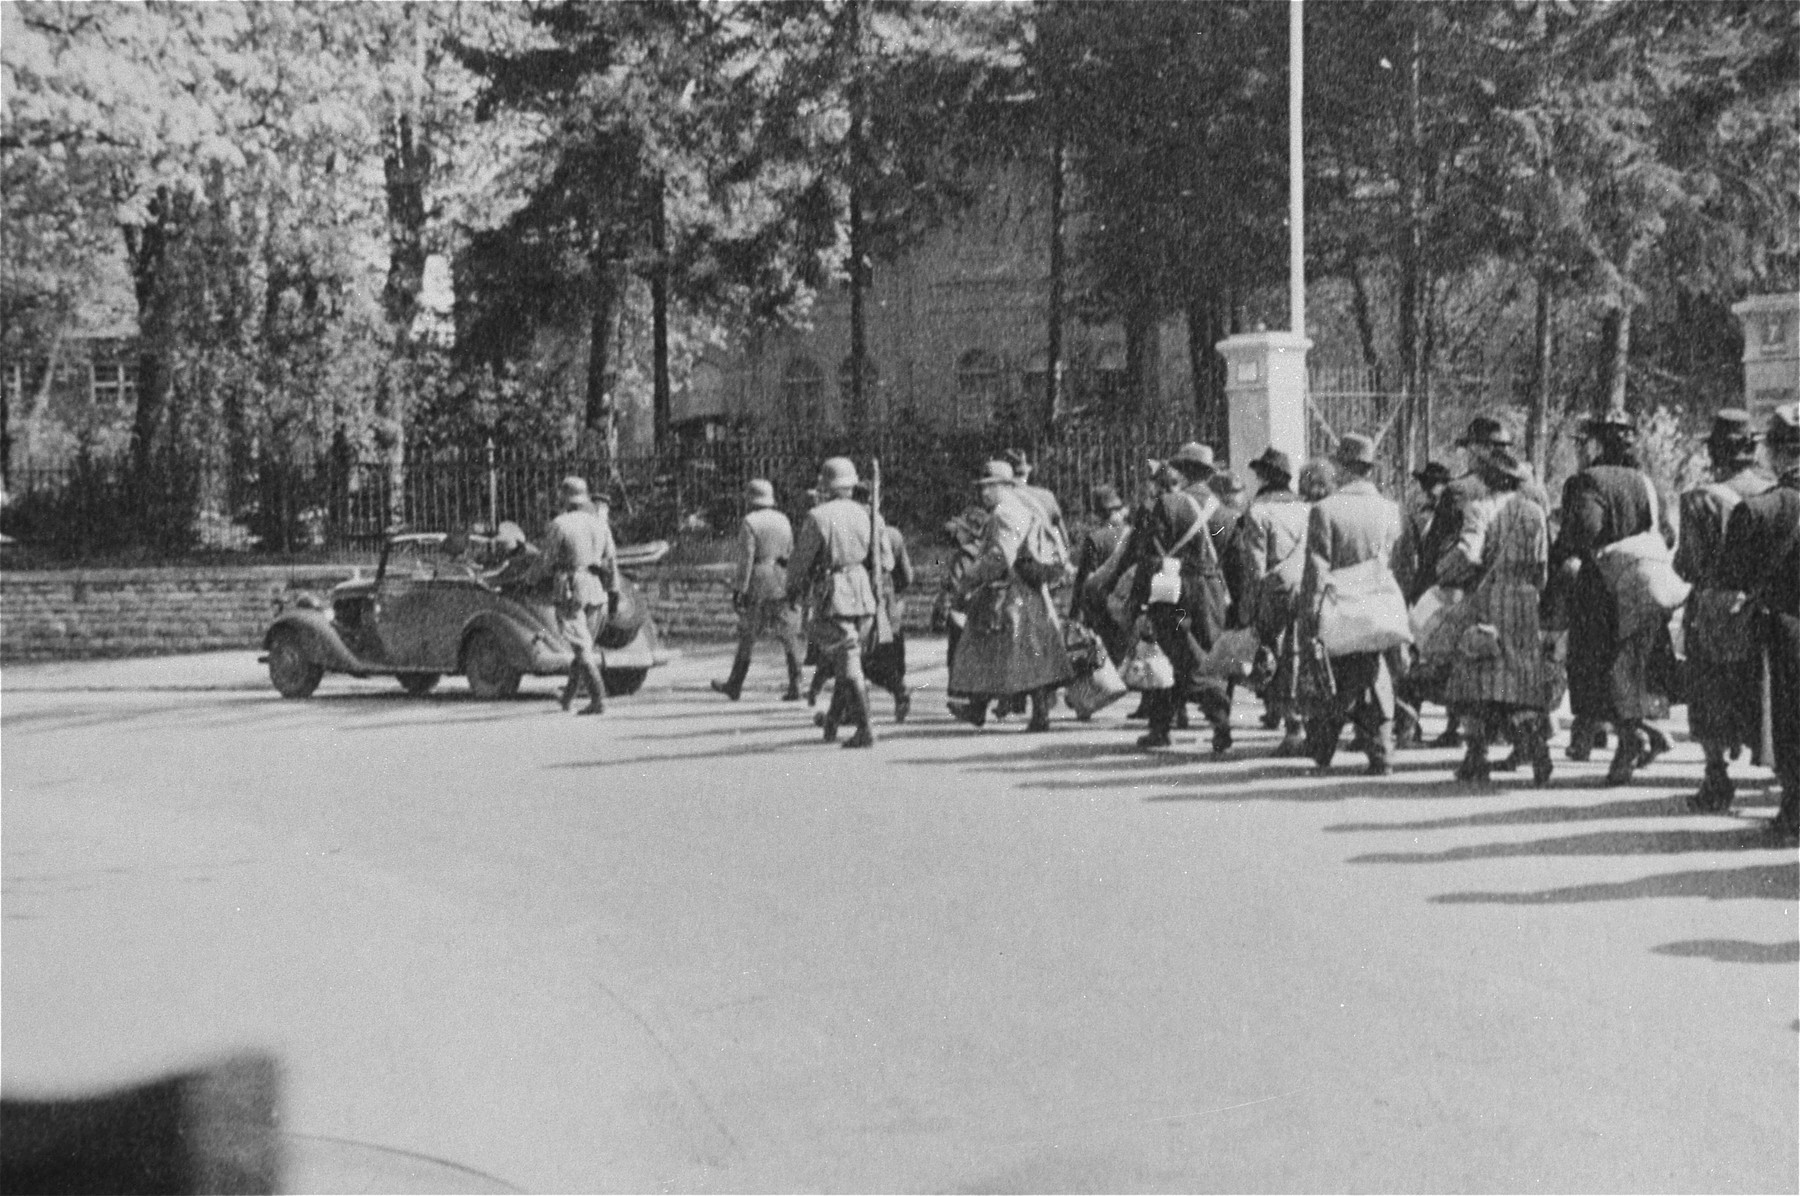 Jewish deportees, carrying bundles and suitcases, march through town toward the railroad station behind Nazi officials riding in an open car.